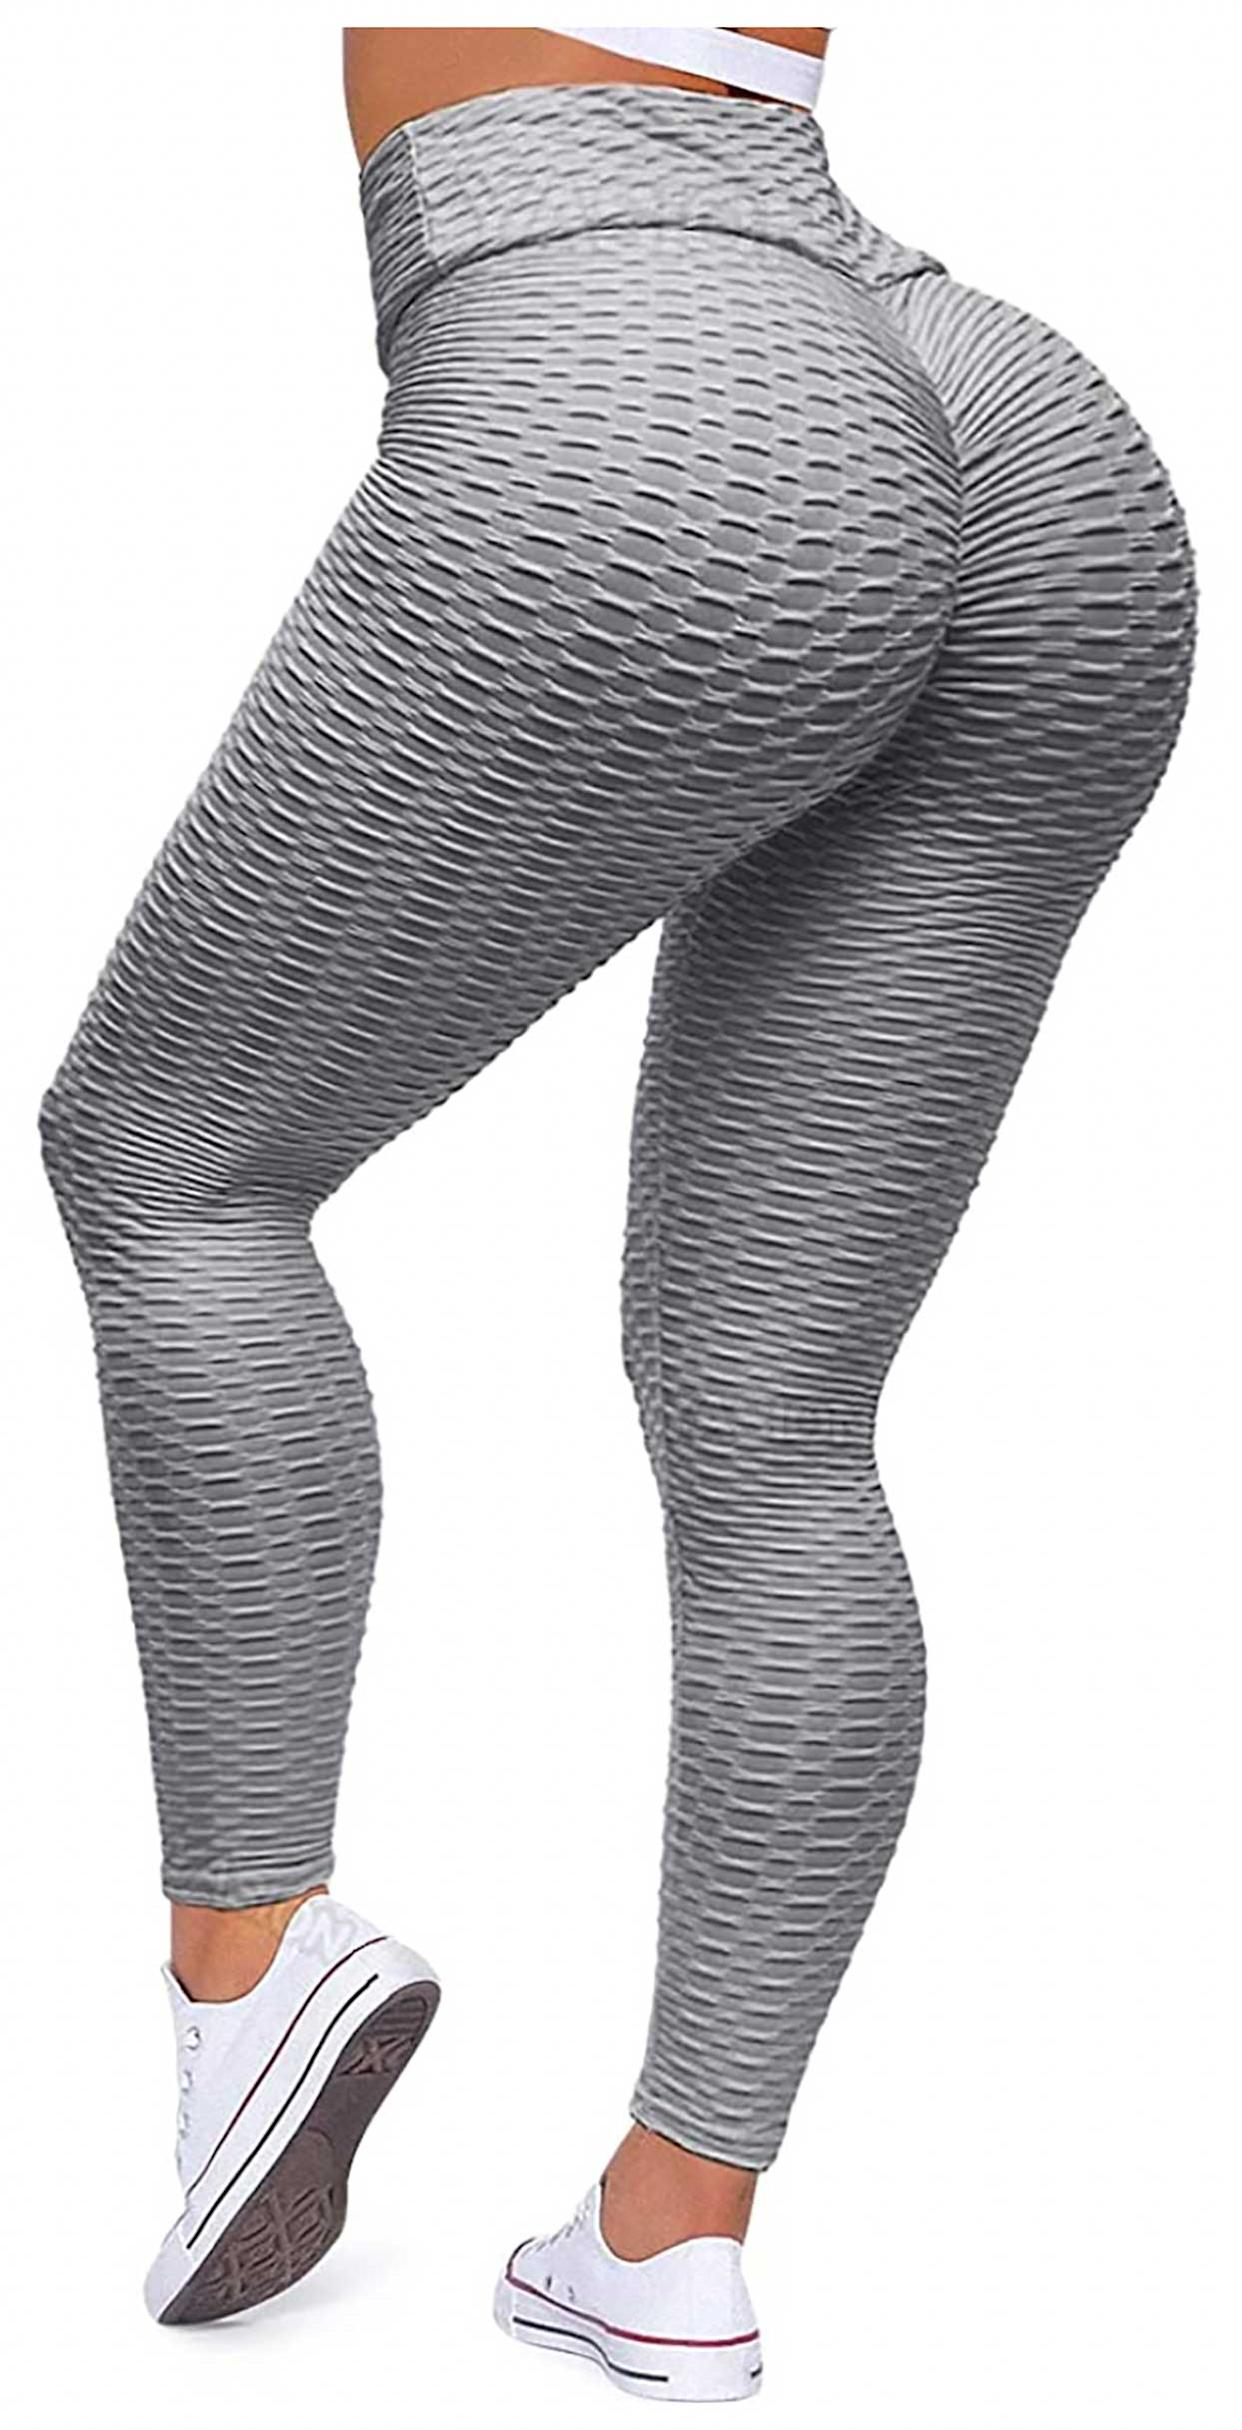 textured workout pants with butt lift enhanced functionality